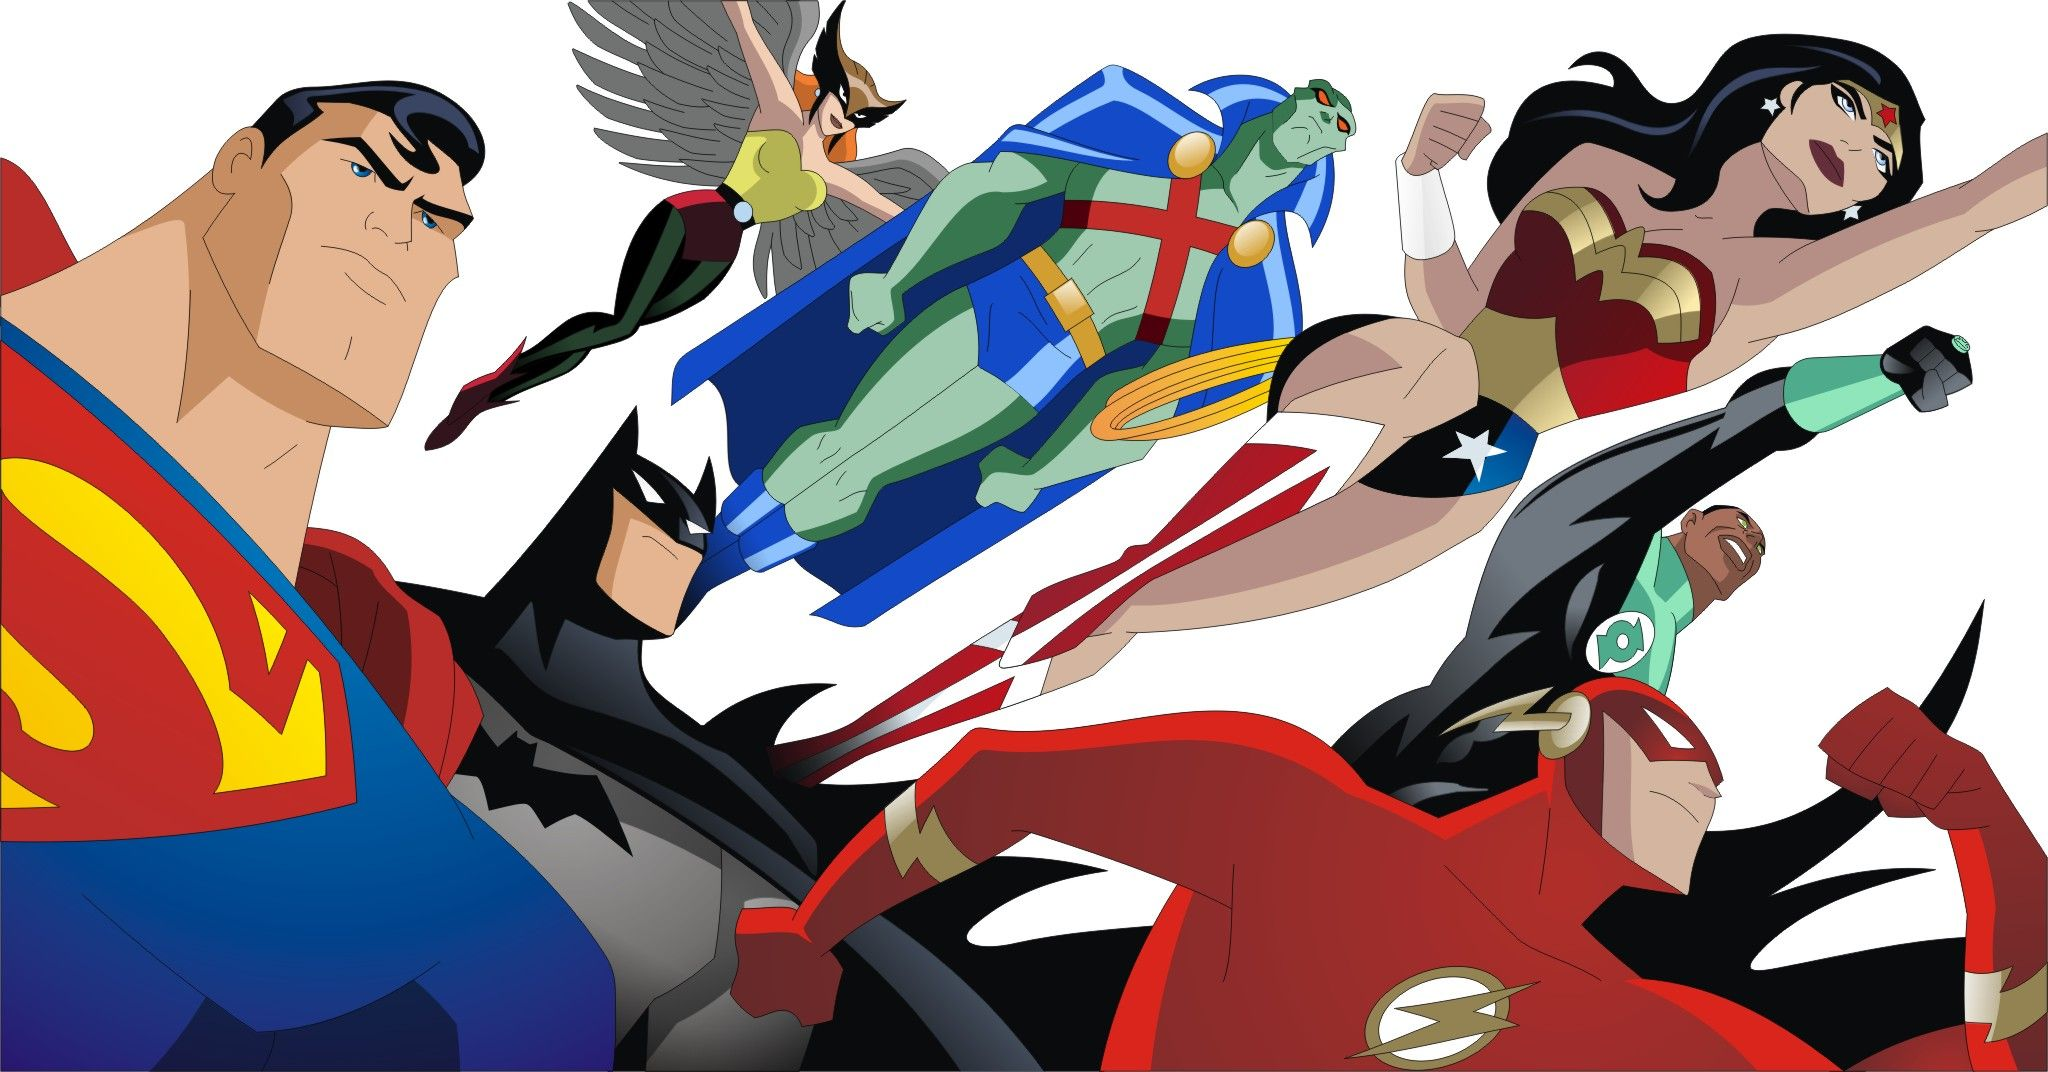 Top 20 Warner Bros. Animated Series From The 90s To Now - #UD 1